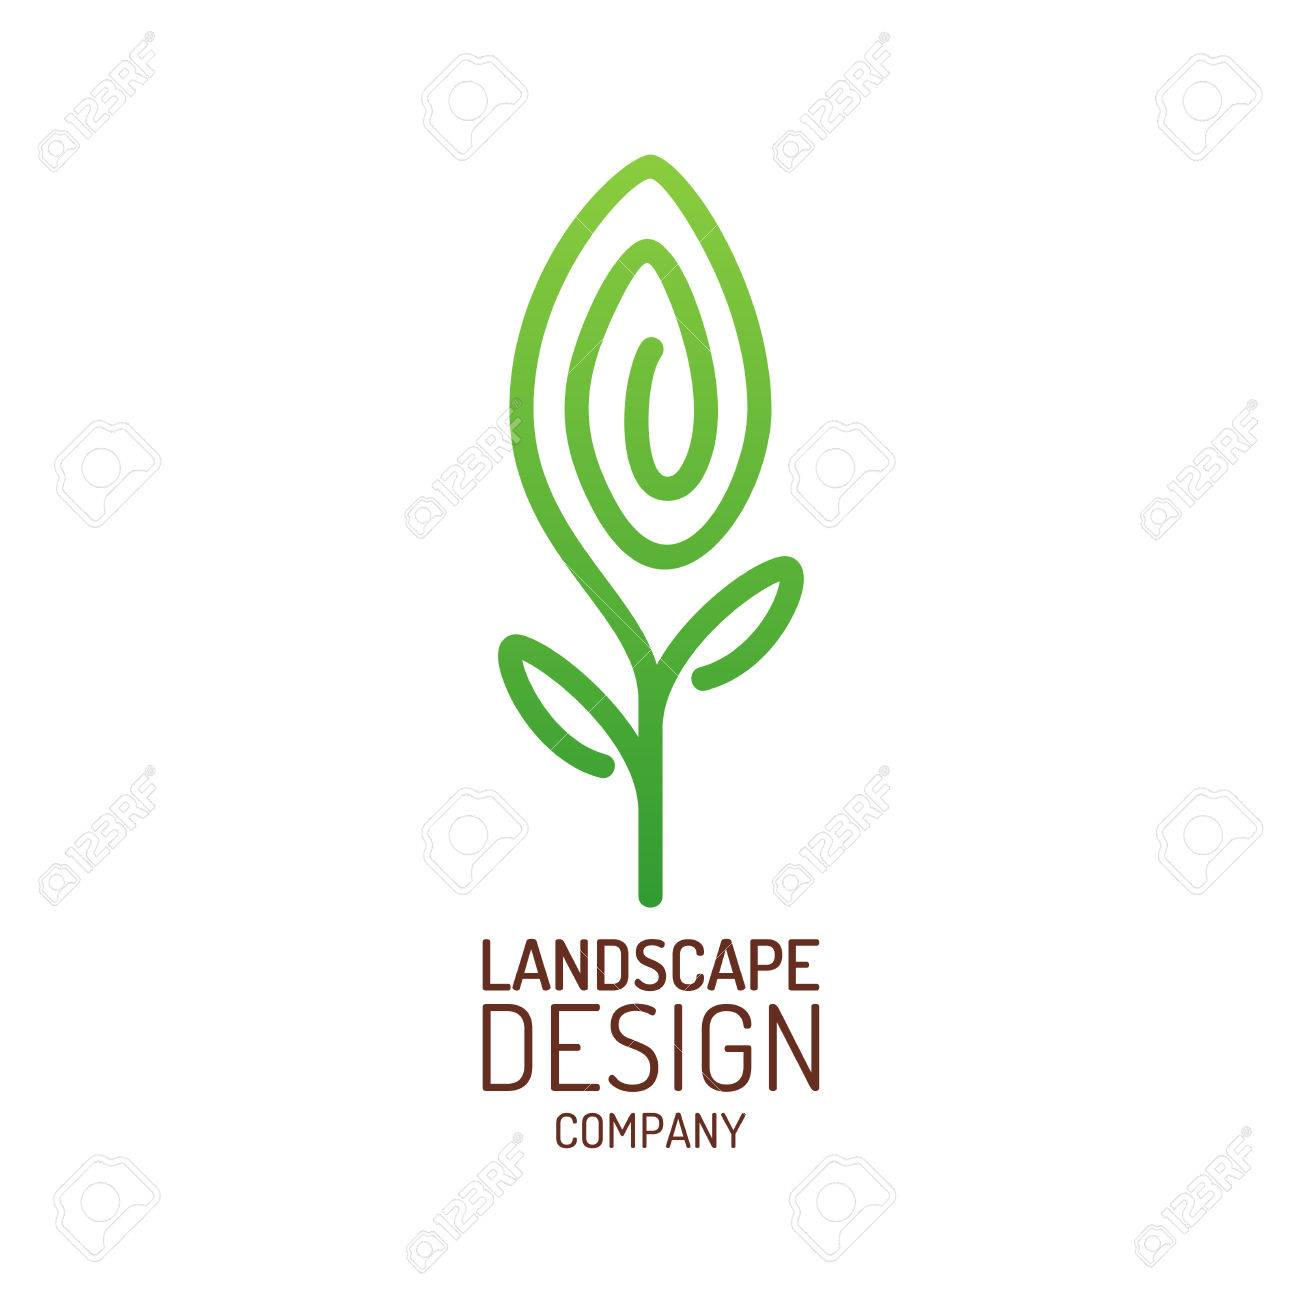 landscape design logo template tree with leaves sign royalty